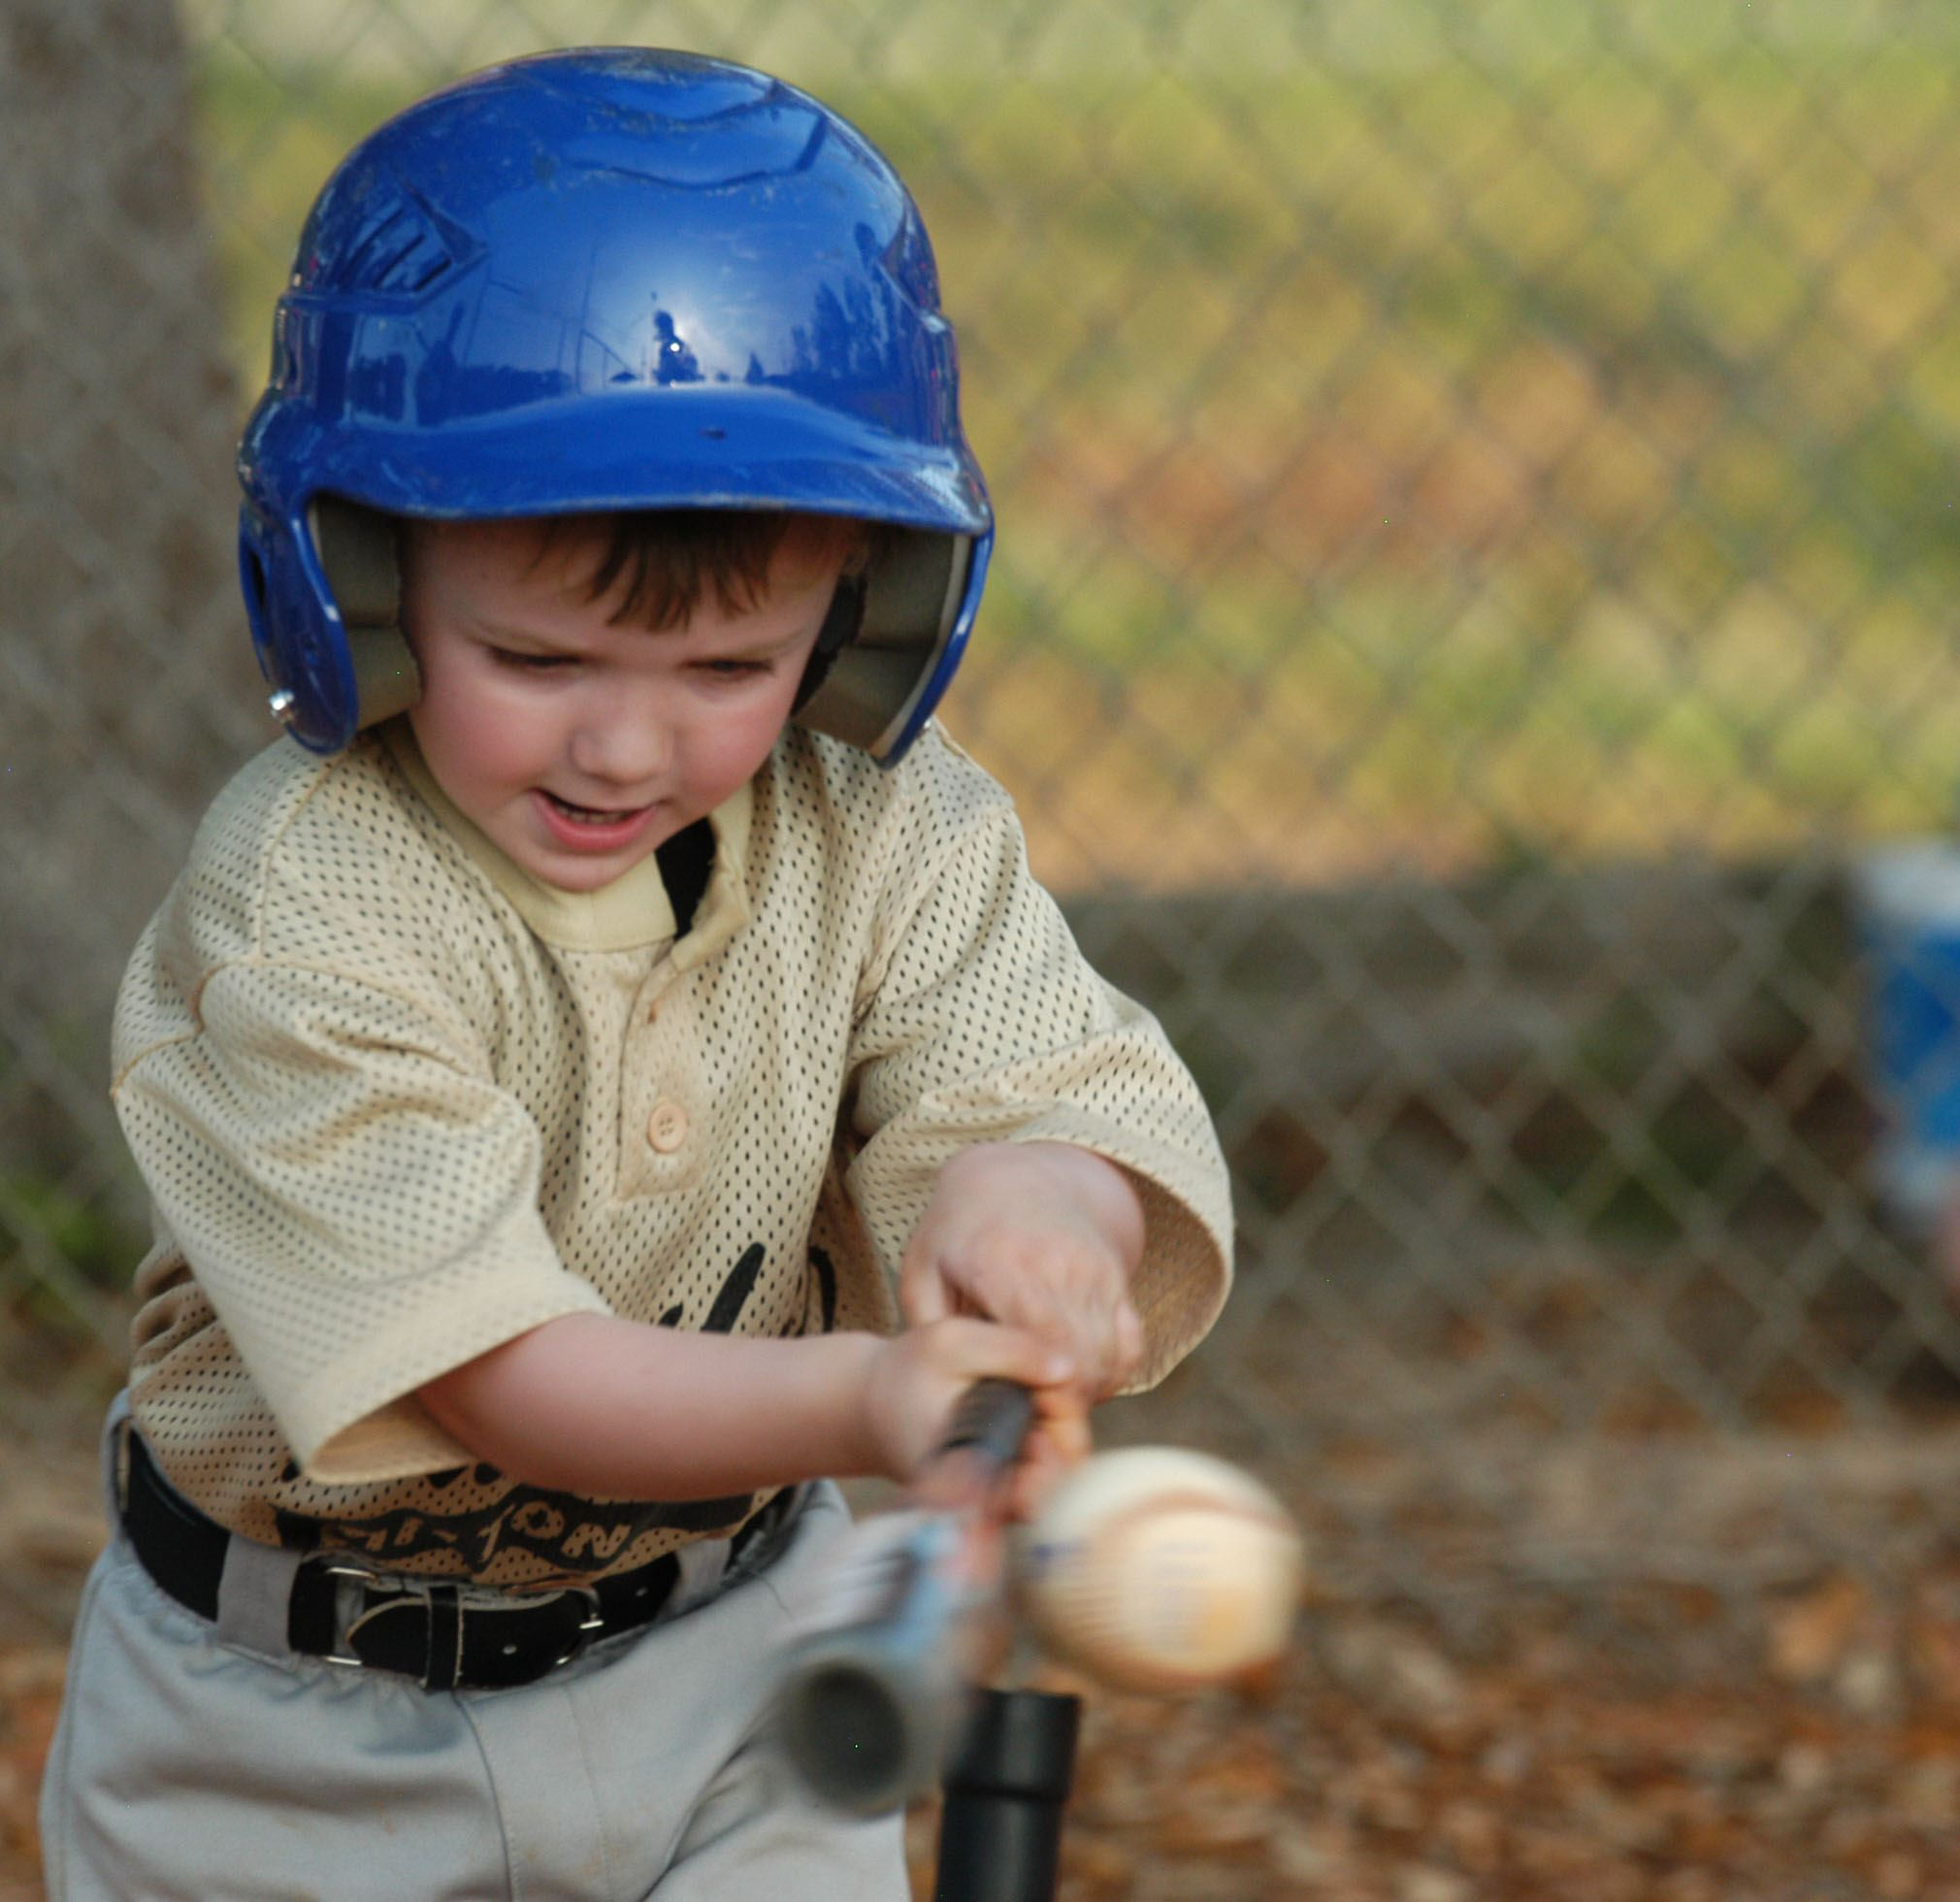 Toddler Hitting a Tee Ball